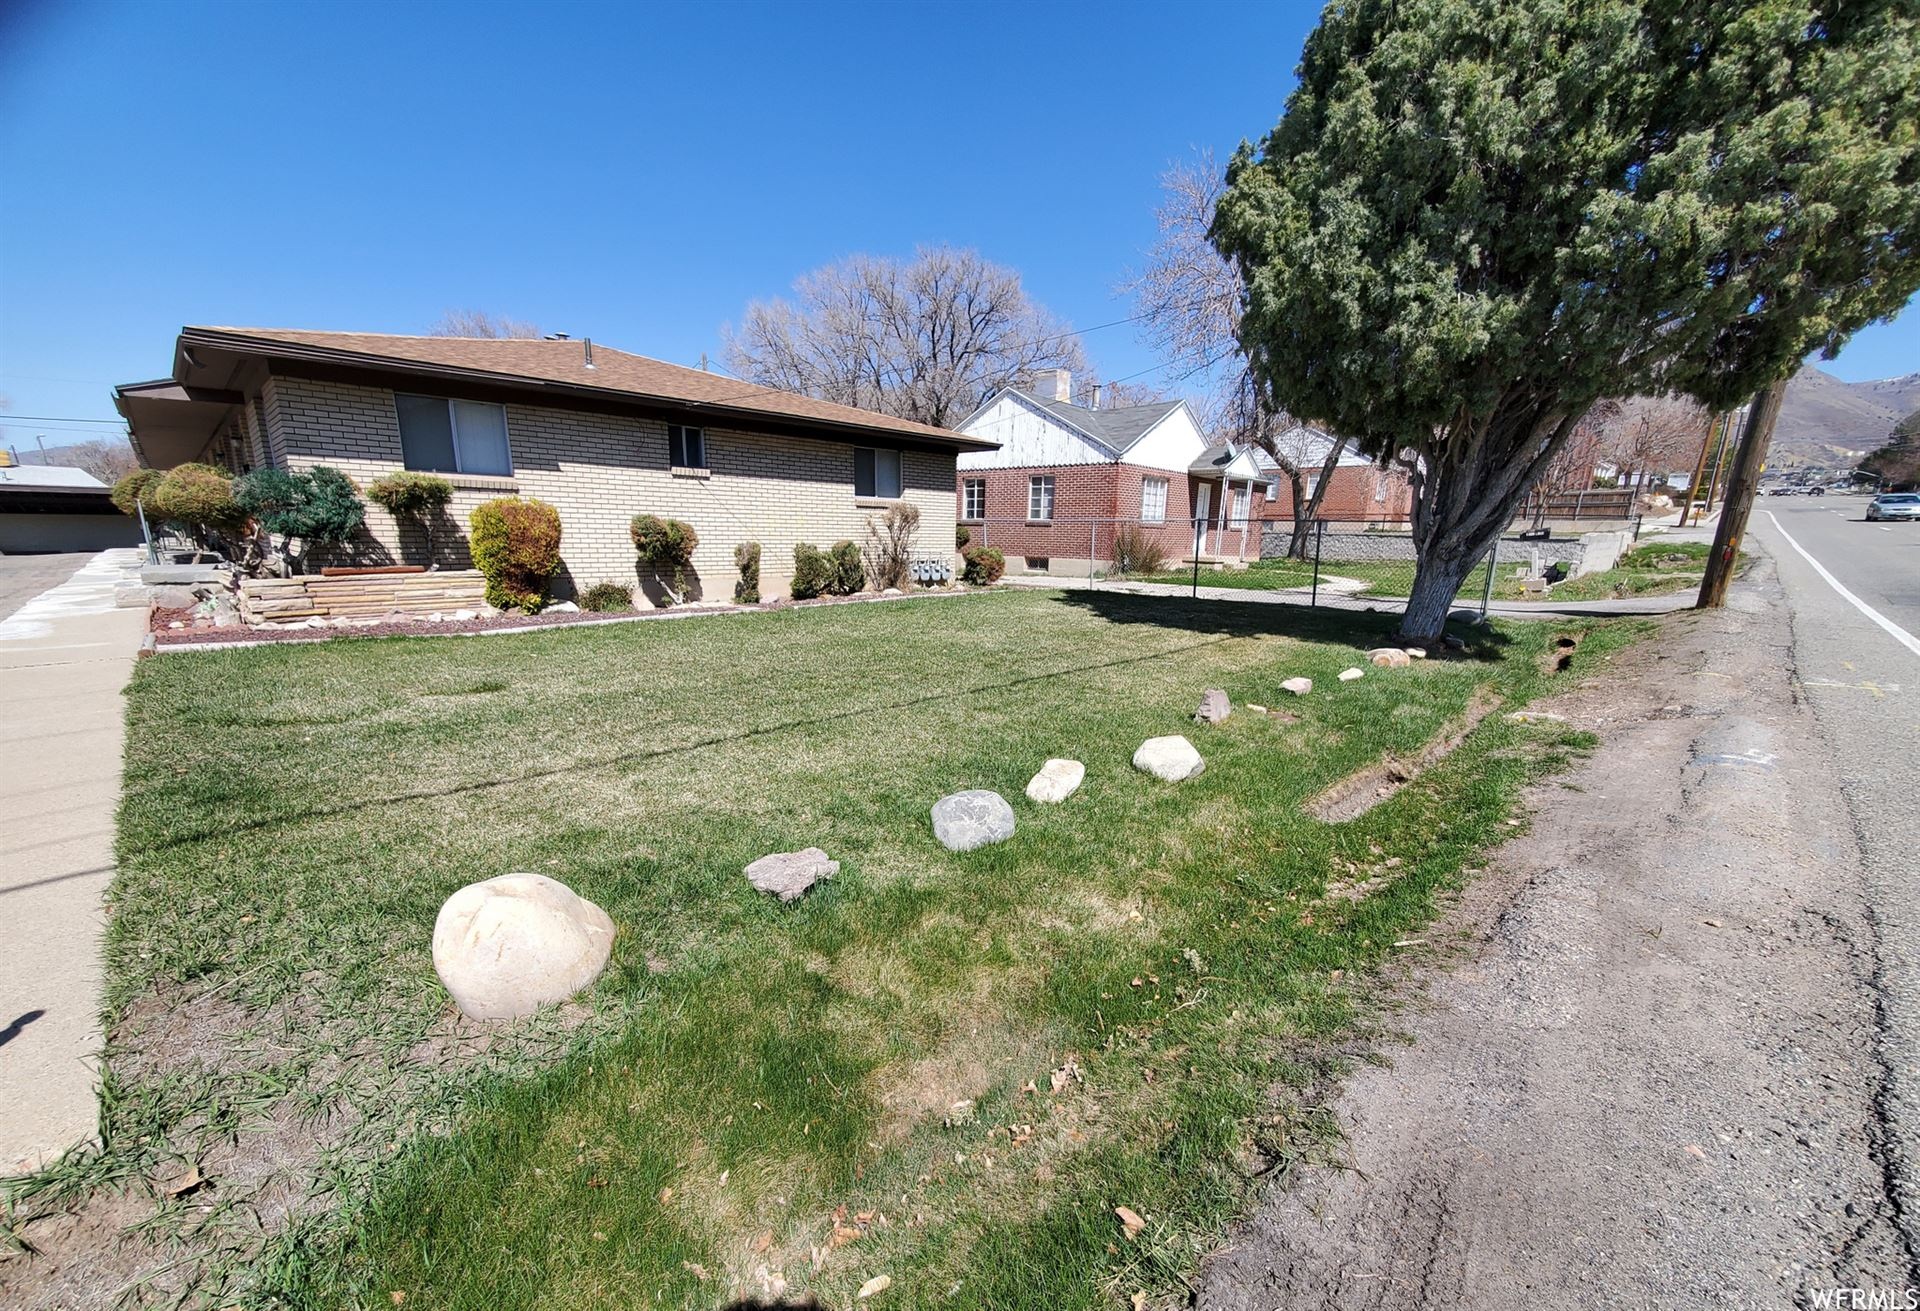 Photo of 2543 E 3300 S, Salt Lake City, UT 84109 (MLS # 1733459)